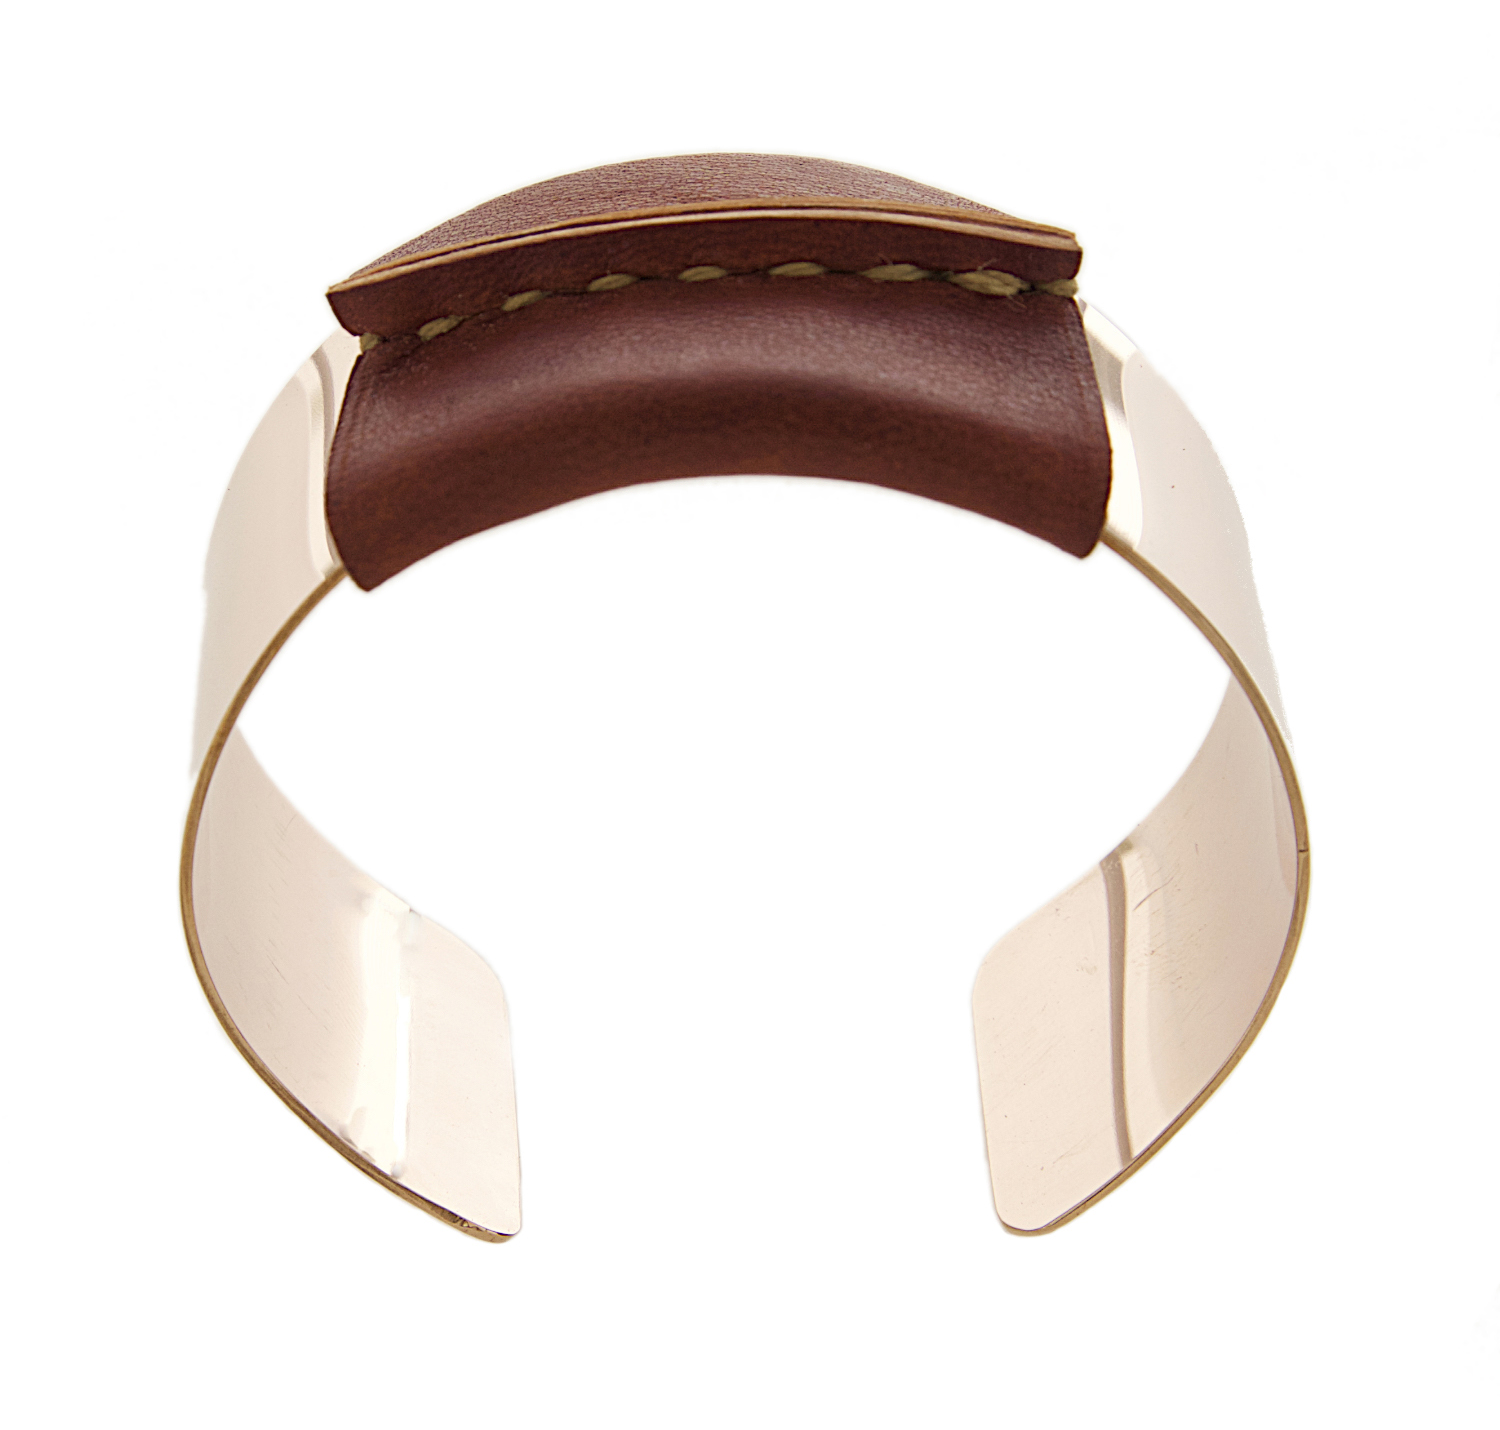 Pink Gold Filled Cuff Brown/Tan Leather